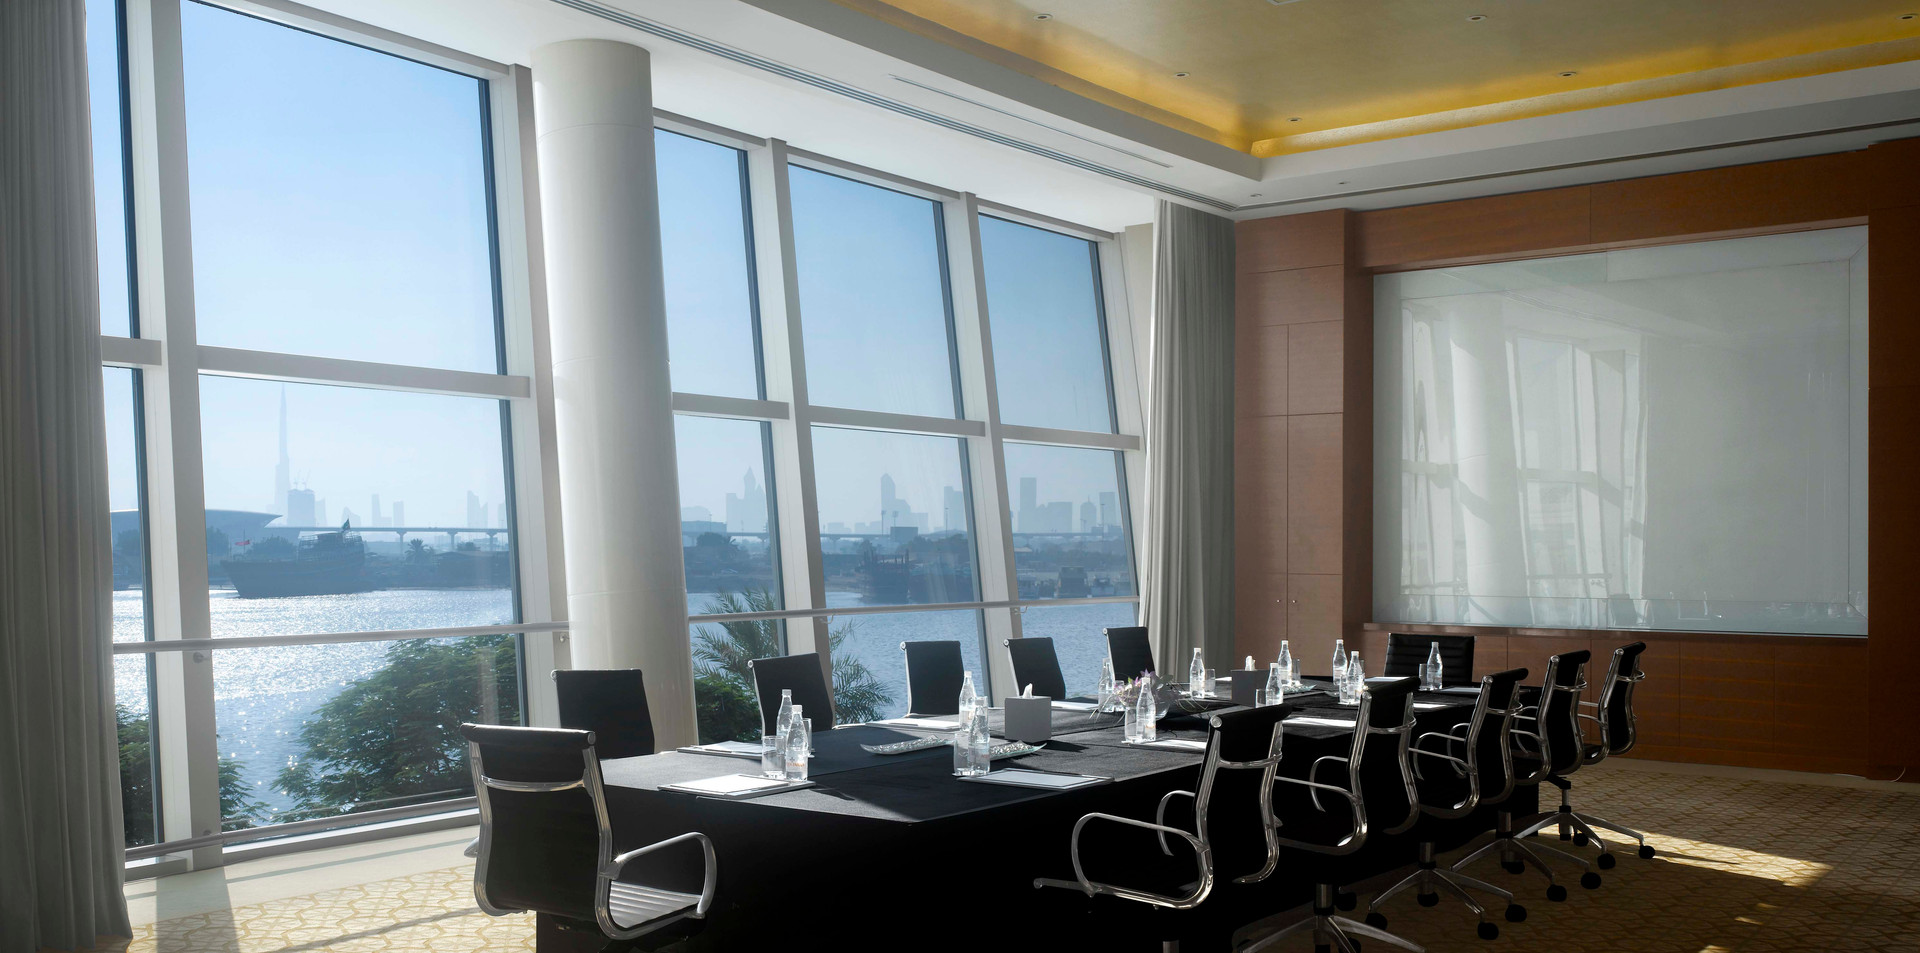 Events Center Al Amwaj Boardroom Setup.jpg